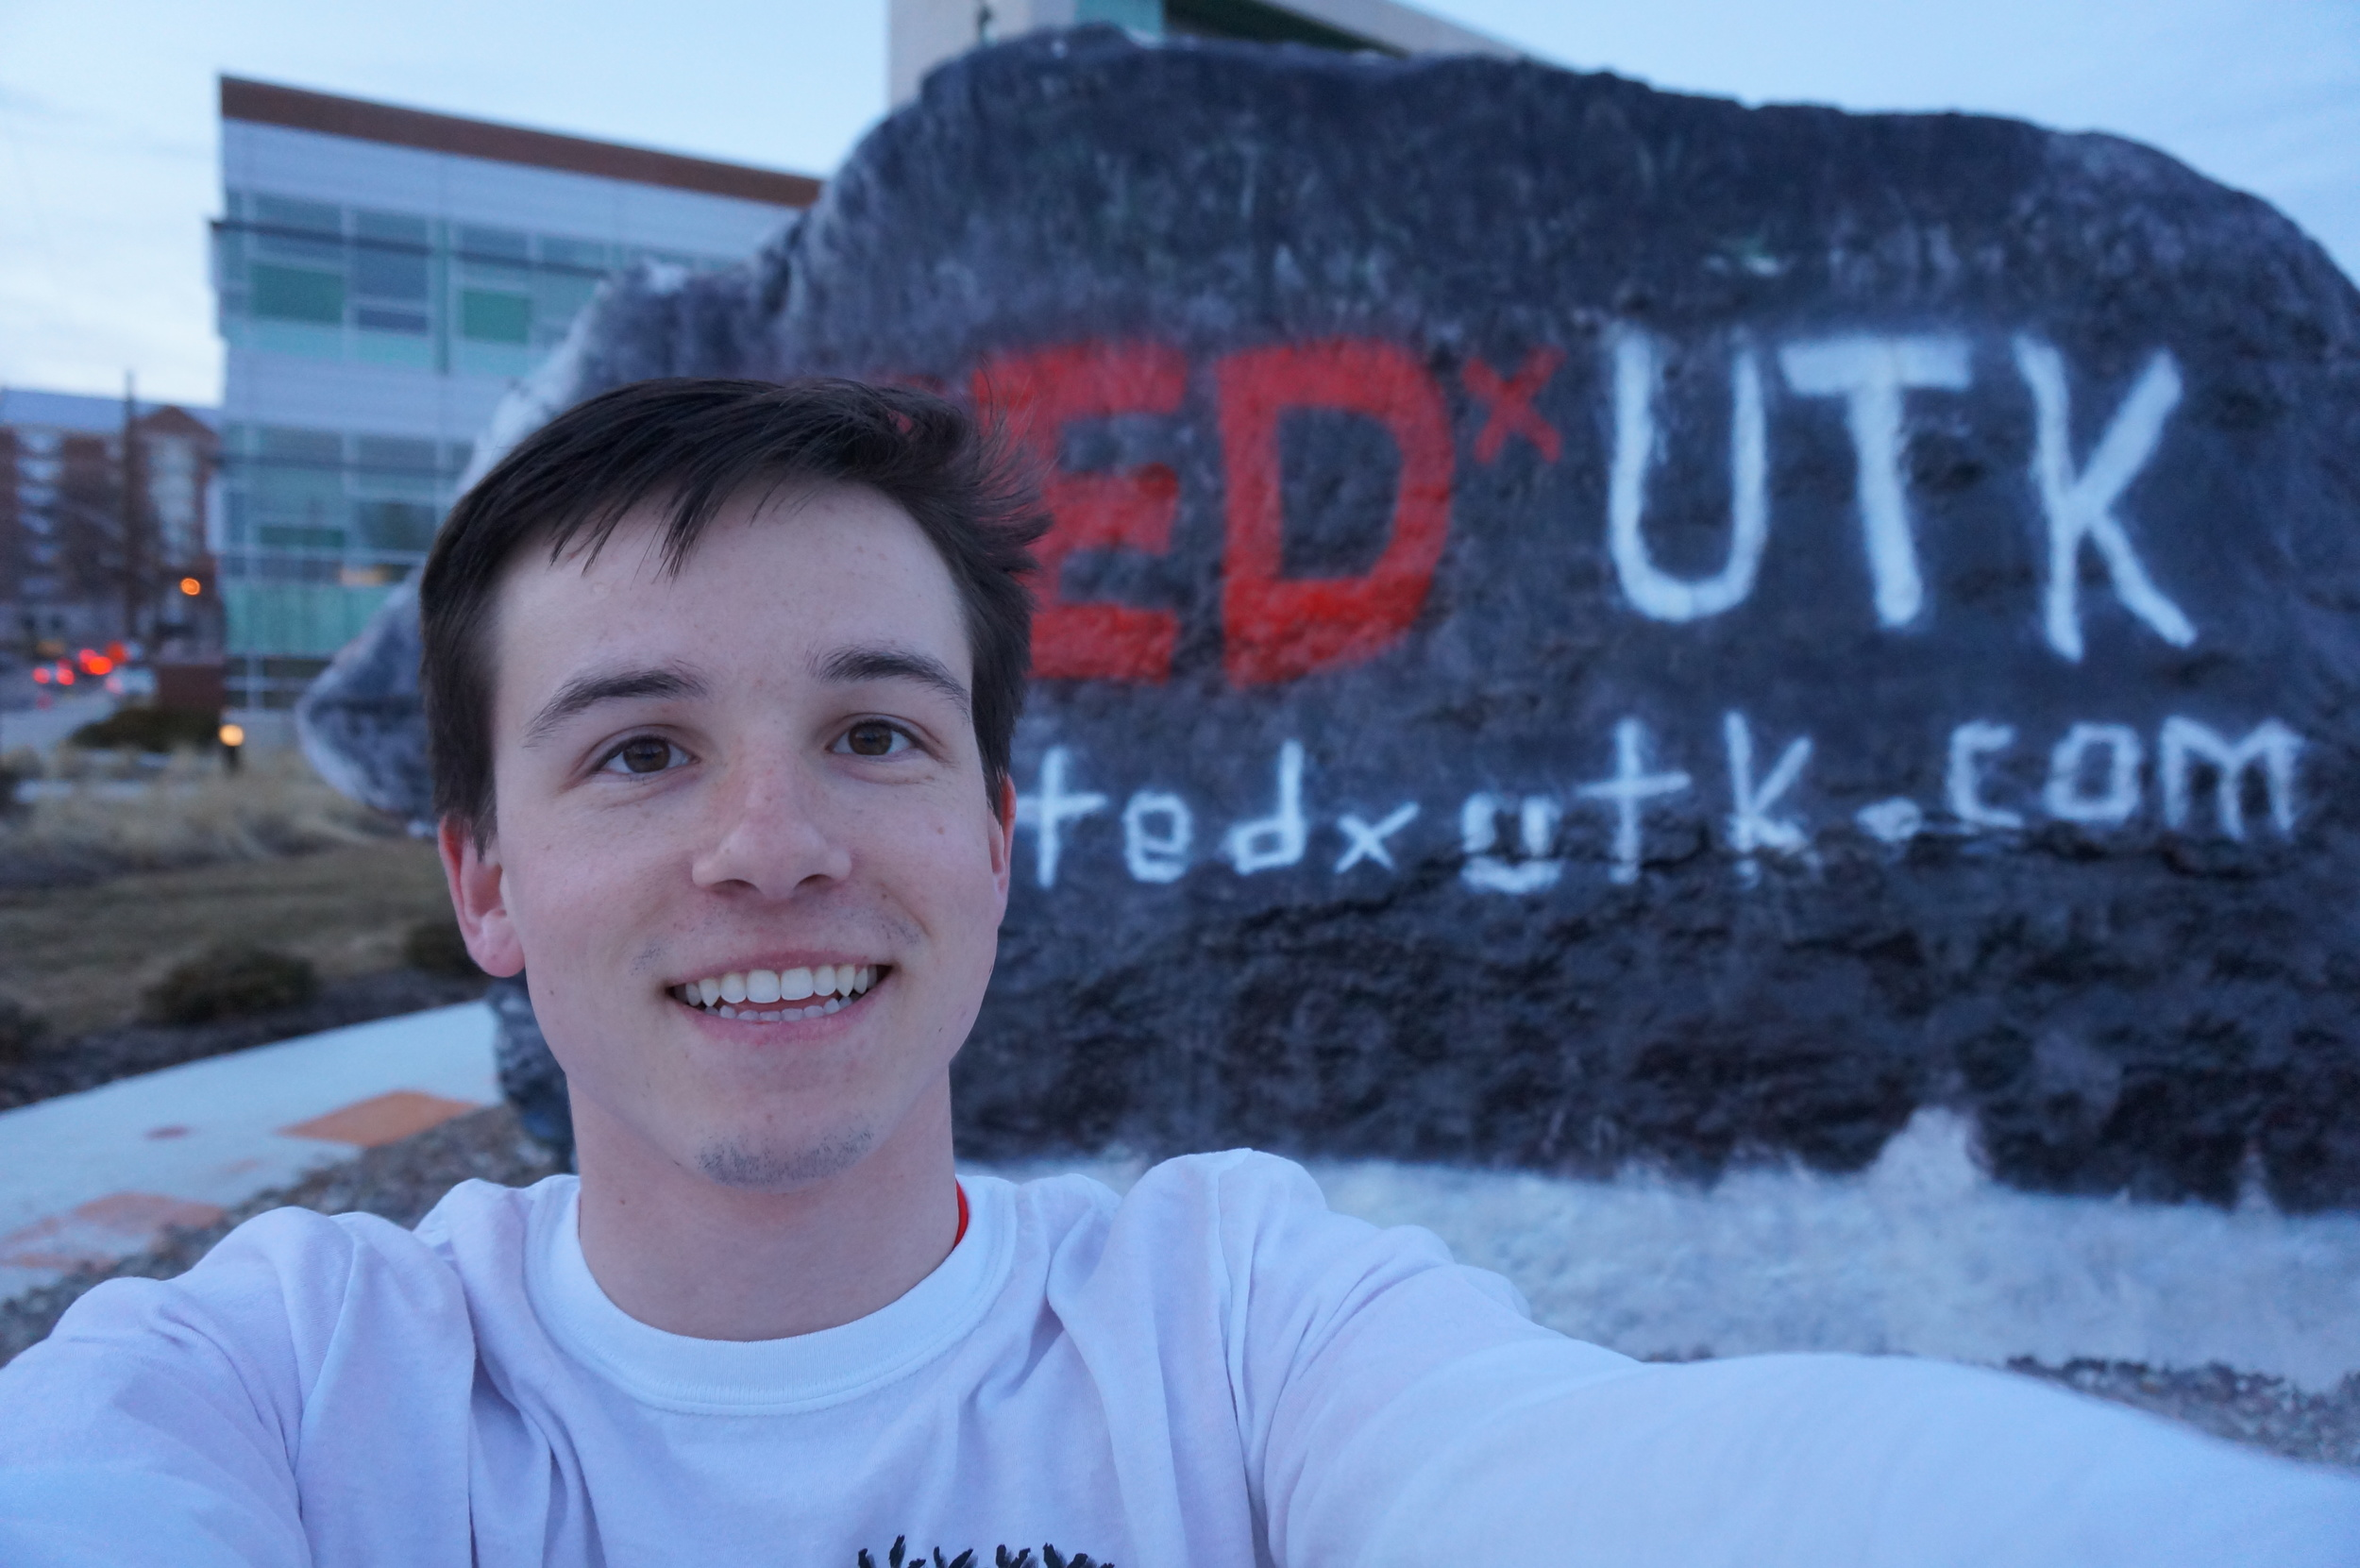 Painting the 'Rock' on campus for TEDx awareness.